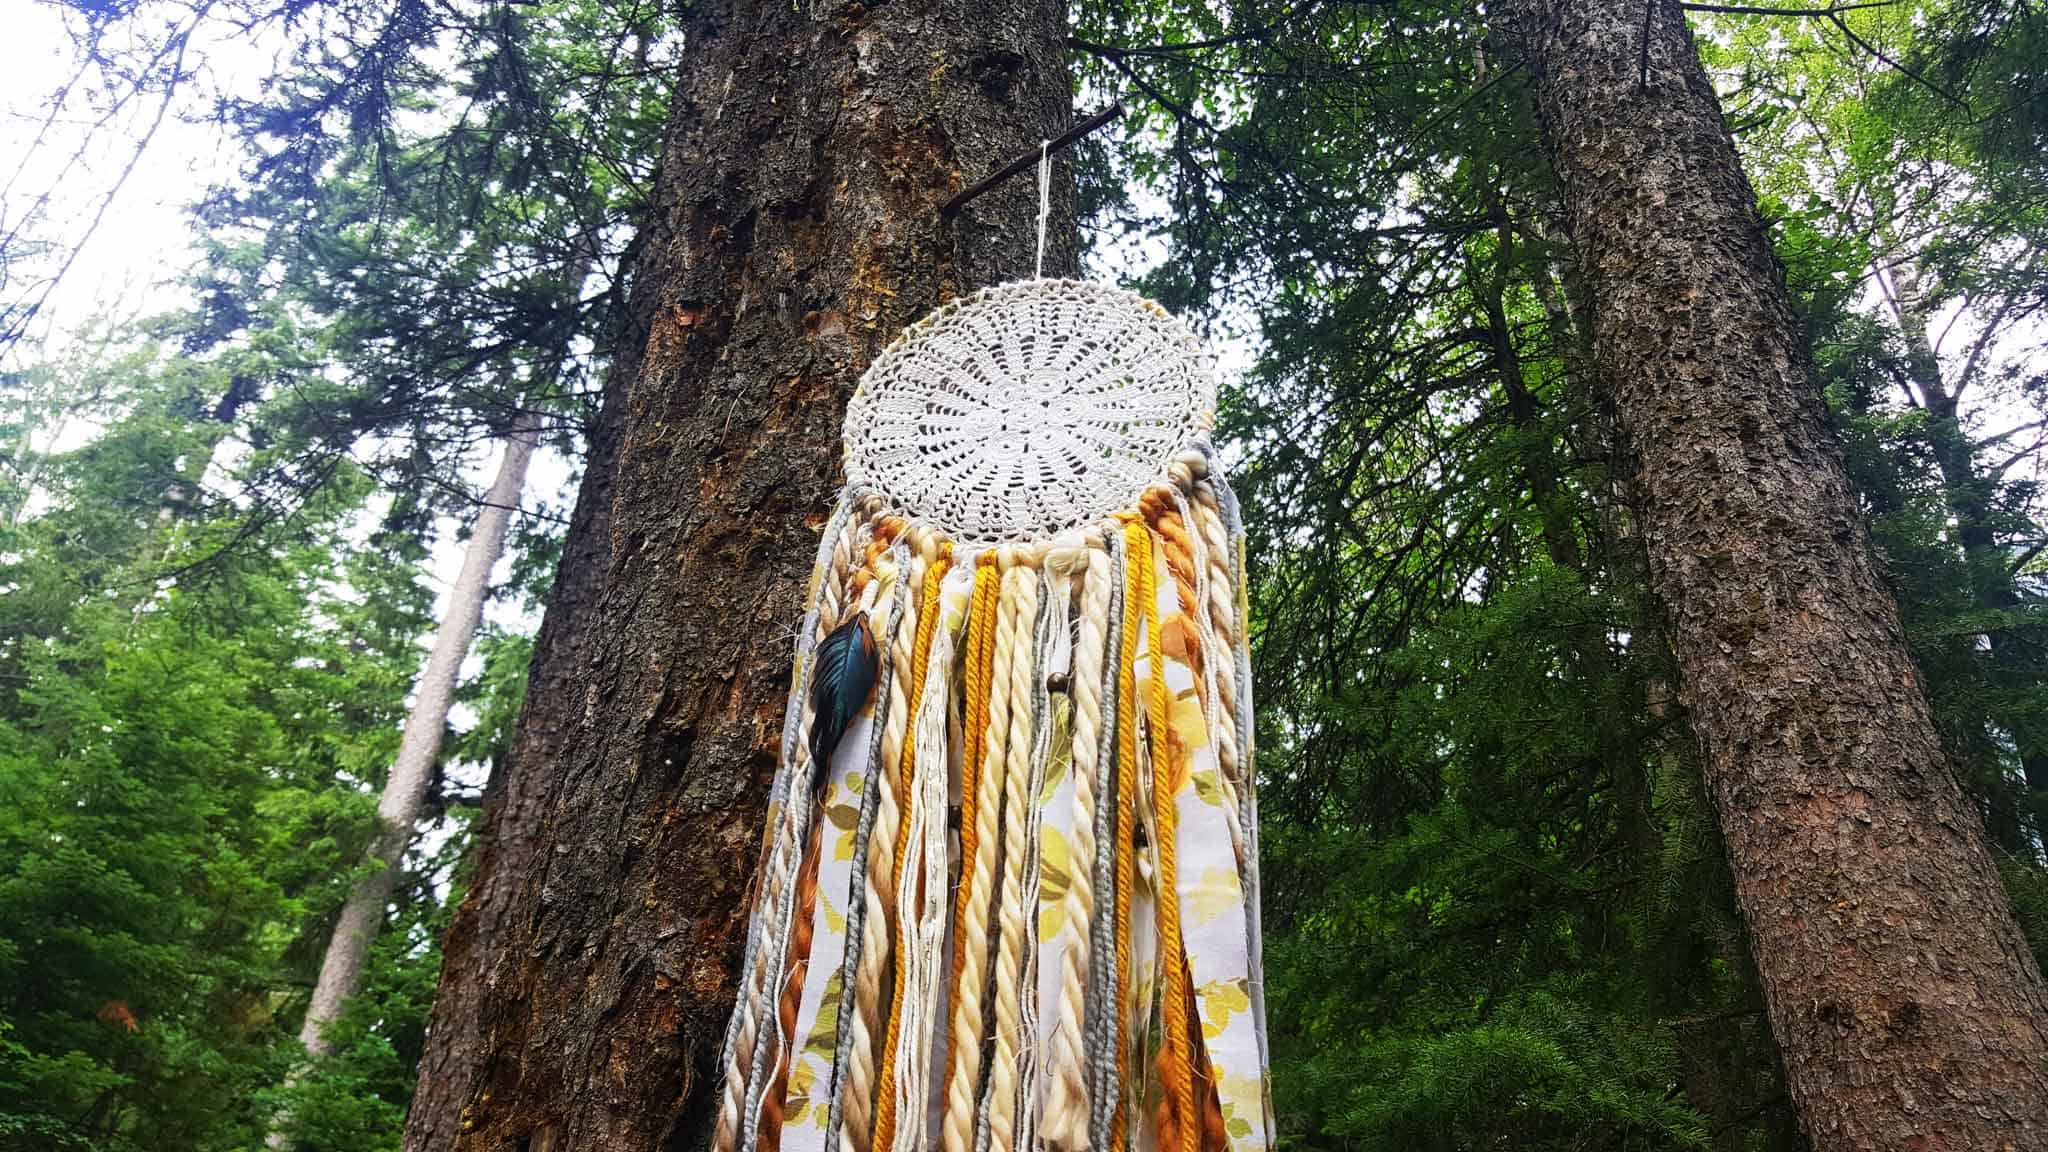 Giveaway: Win A Gorgeous Dreamcatcher From HippBee